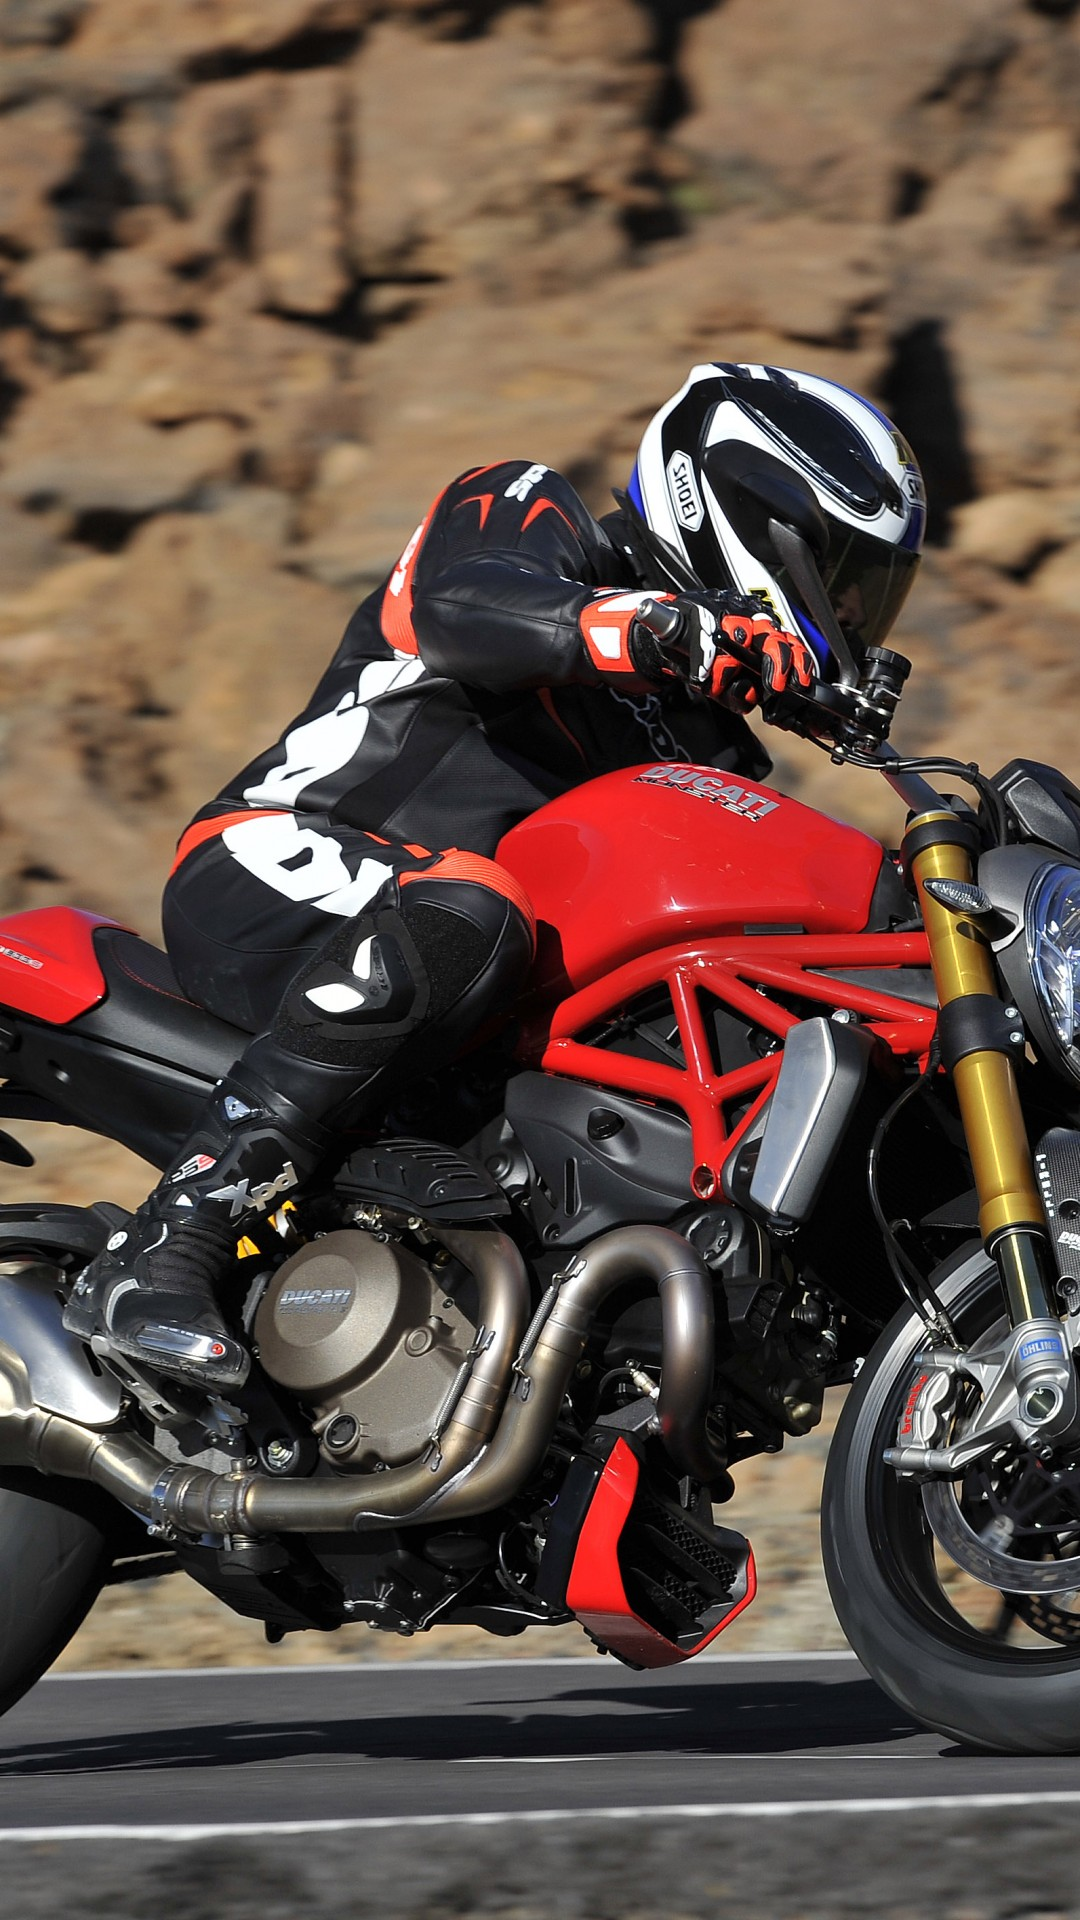 Wallpaper Ducati Monster 1200s Best Bikes 2015